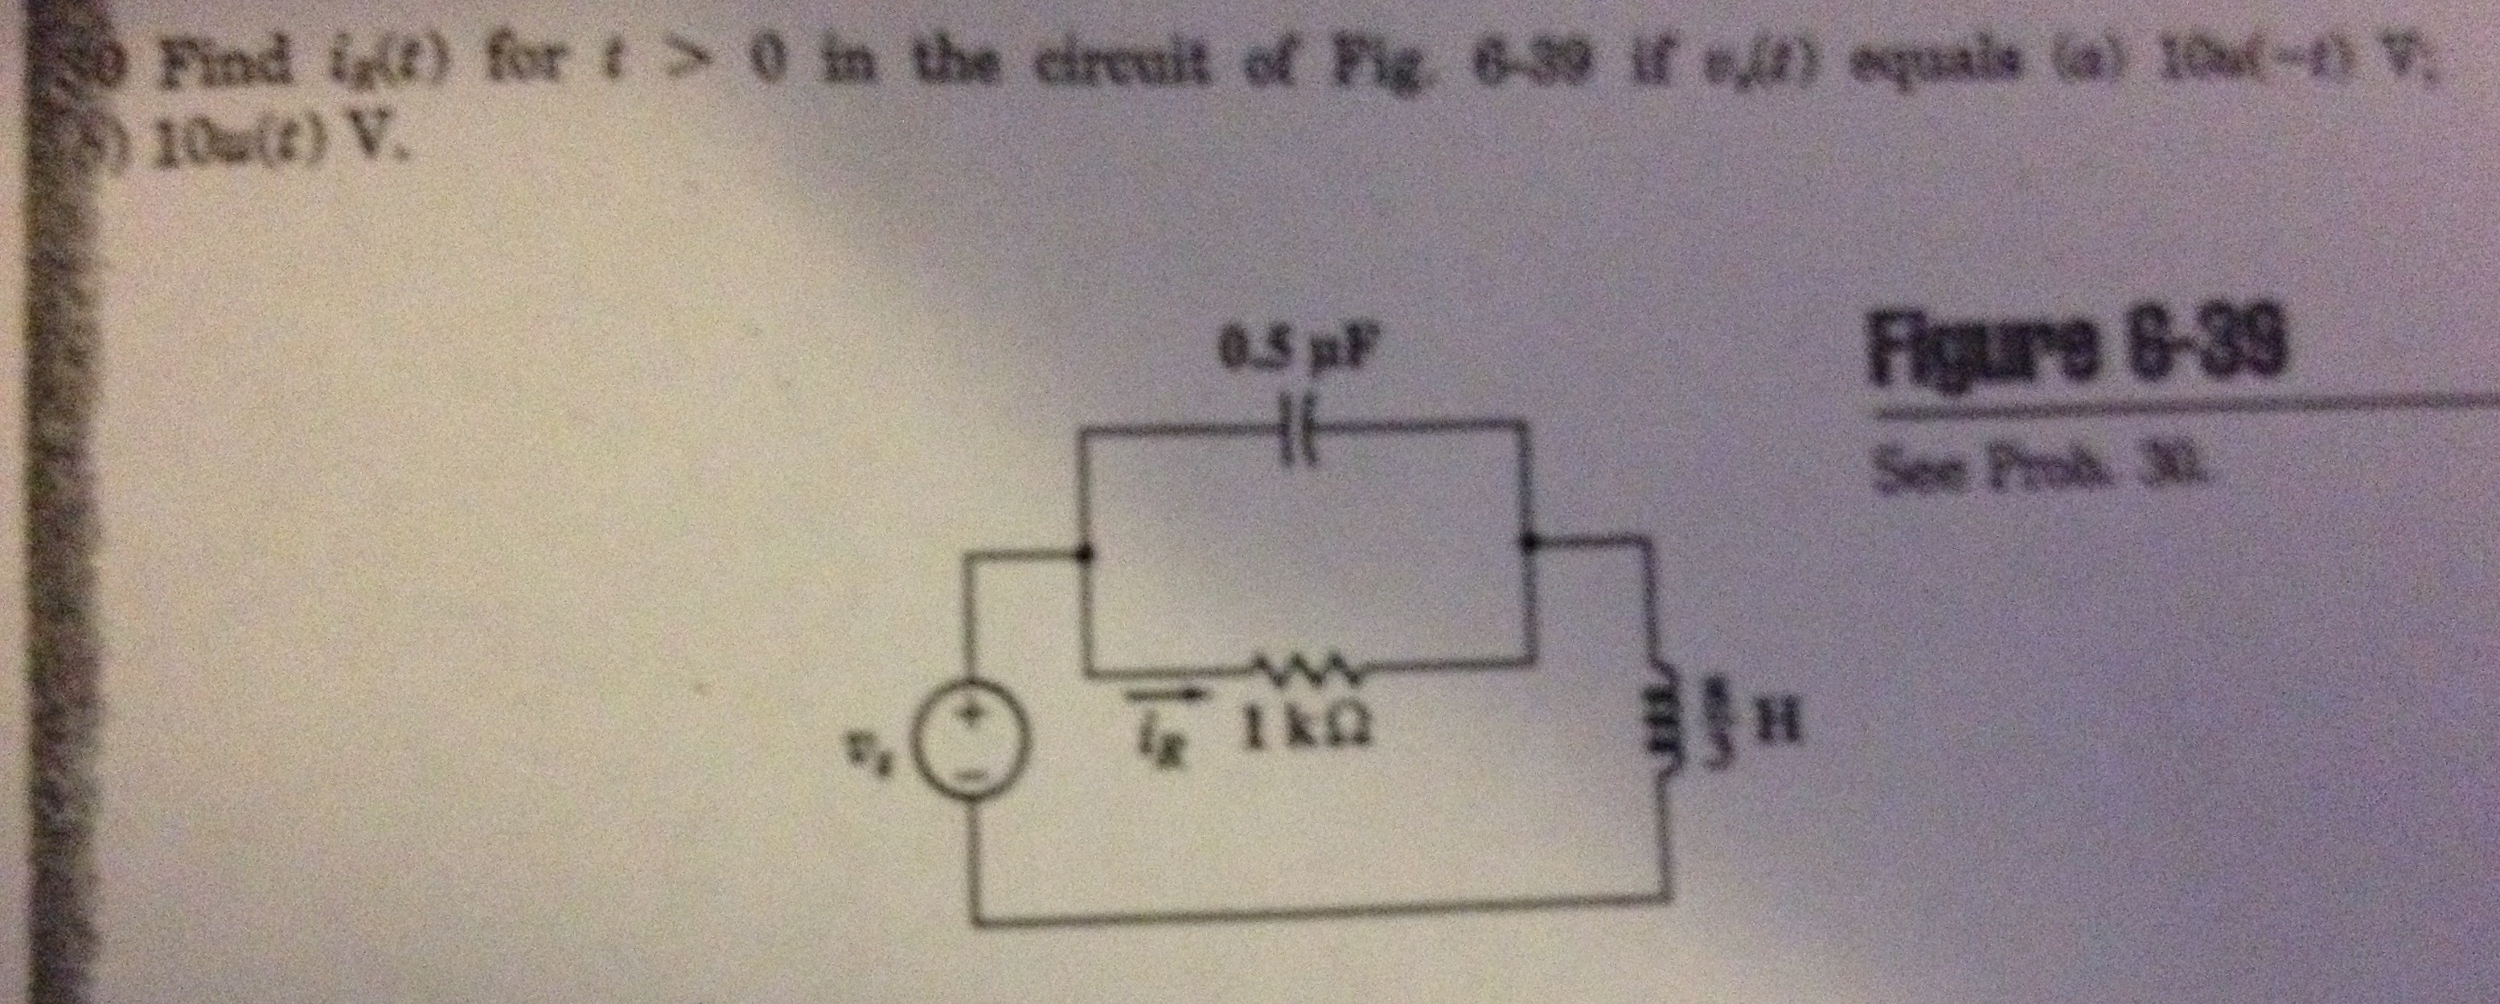 Find iR(t) for t>0 in the circuit of Fig. 6-39 if